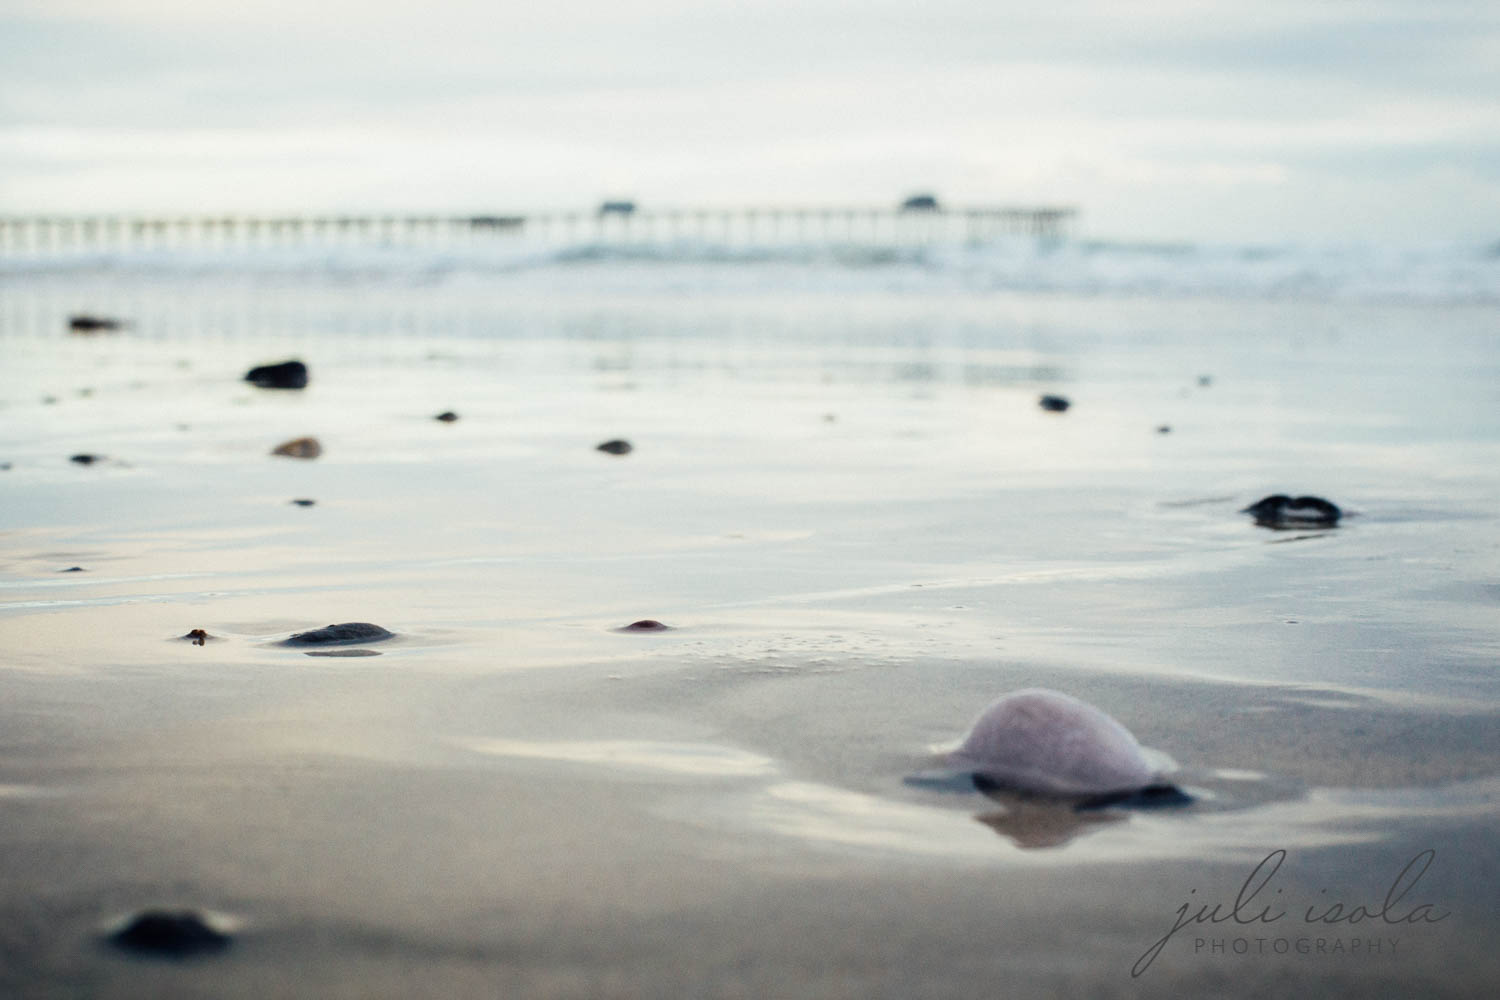 beach_nature_juliisolaphotography (20 of 20).jpg